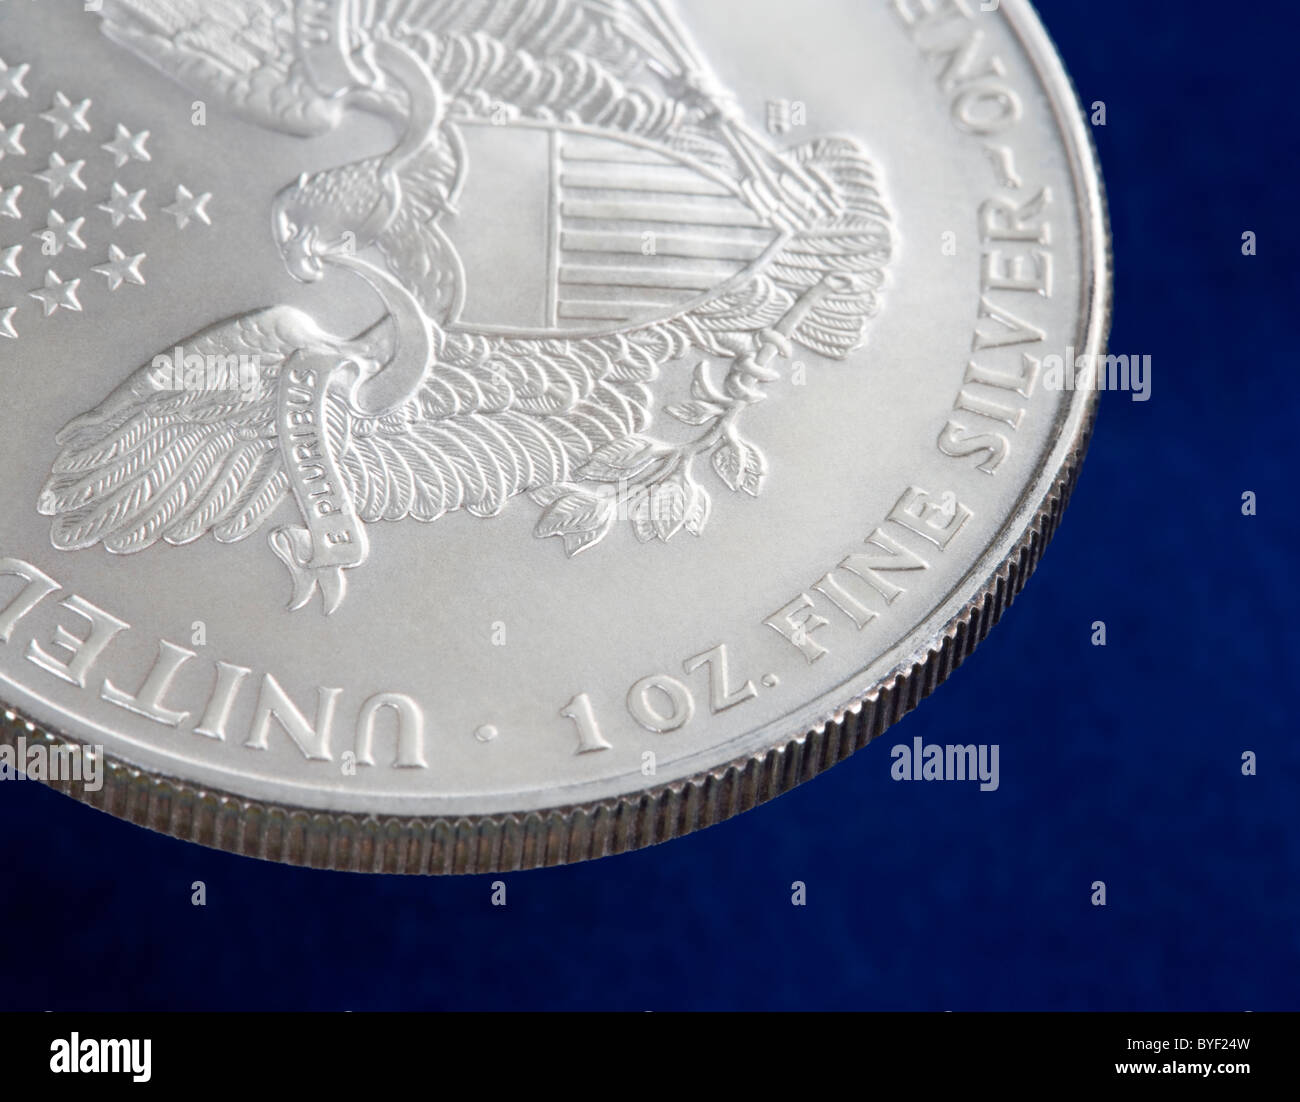 The obverse or back of a one ounce US silver Eagle coin - Stock Image